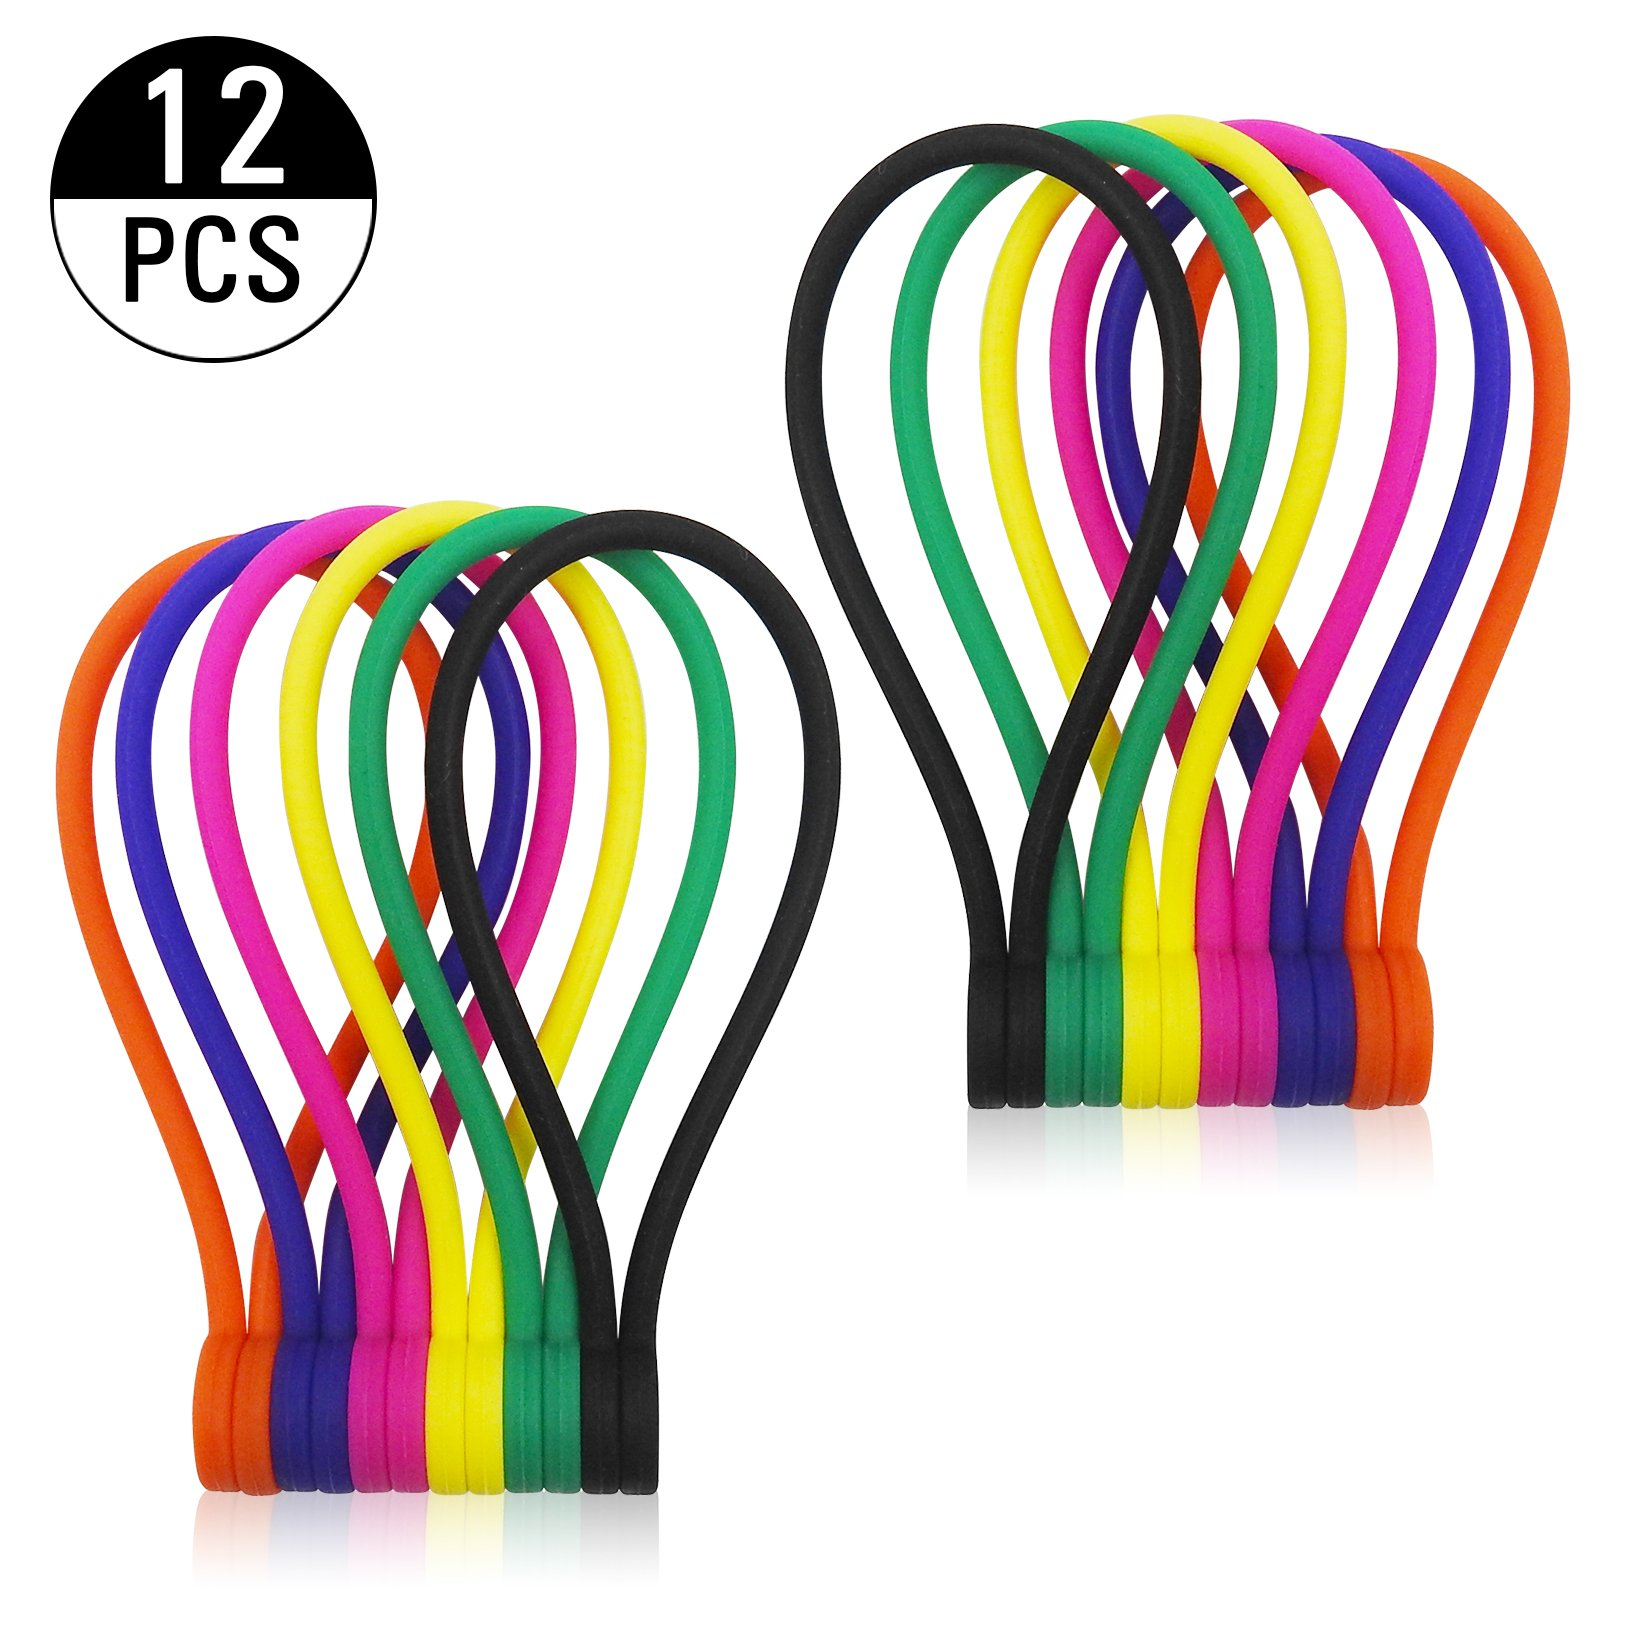 Smart&Cool 12-Pack 6-Color Reusable Silicone Twist Ties with Strong Magnet for Bundling and Organizing, Can Be Used in Many Ways or Just for Fun